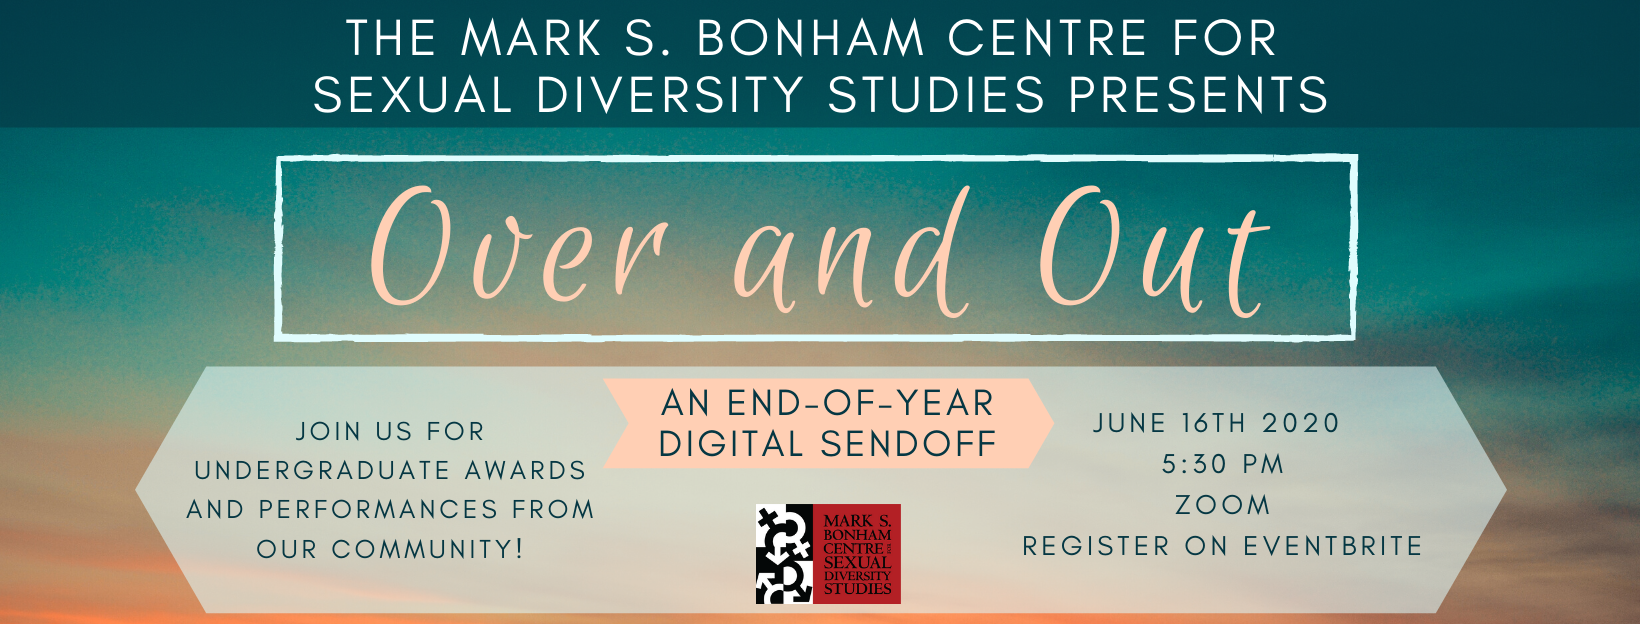 Sexual Diversity Studies: Over and Out   End-of-Year Digital Sendoff